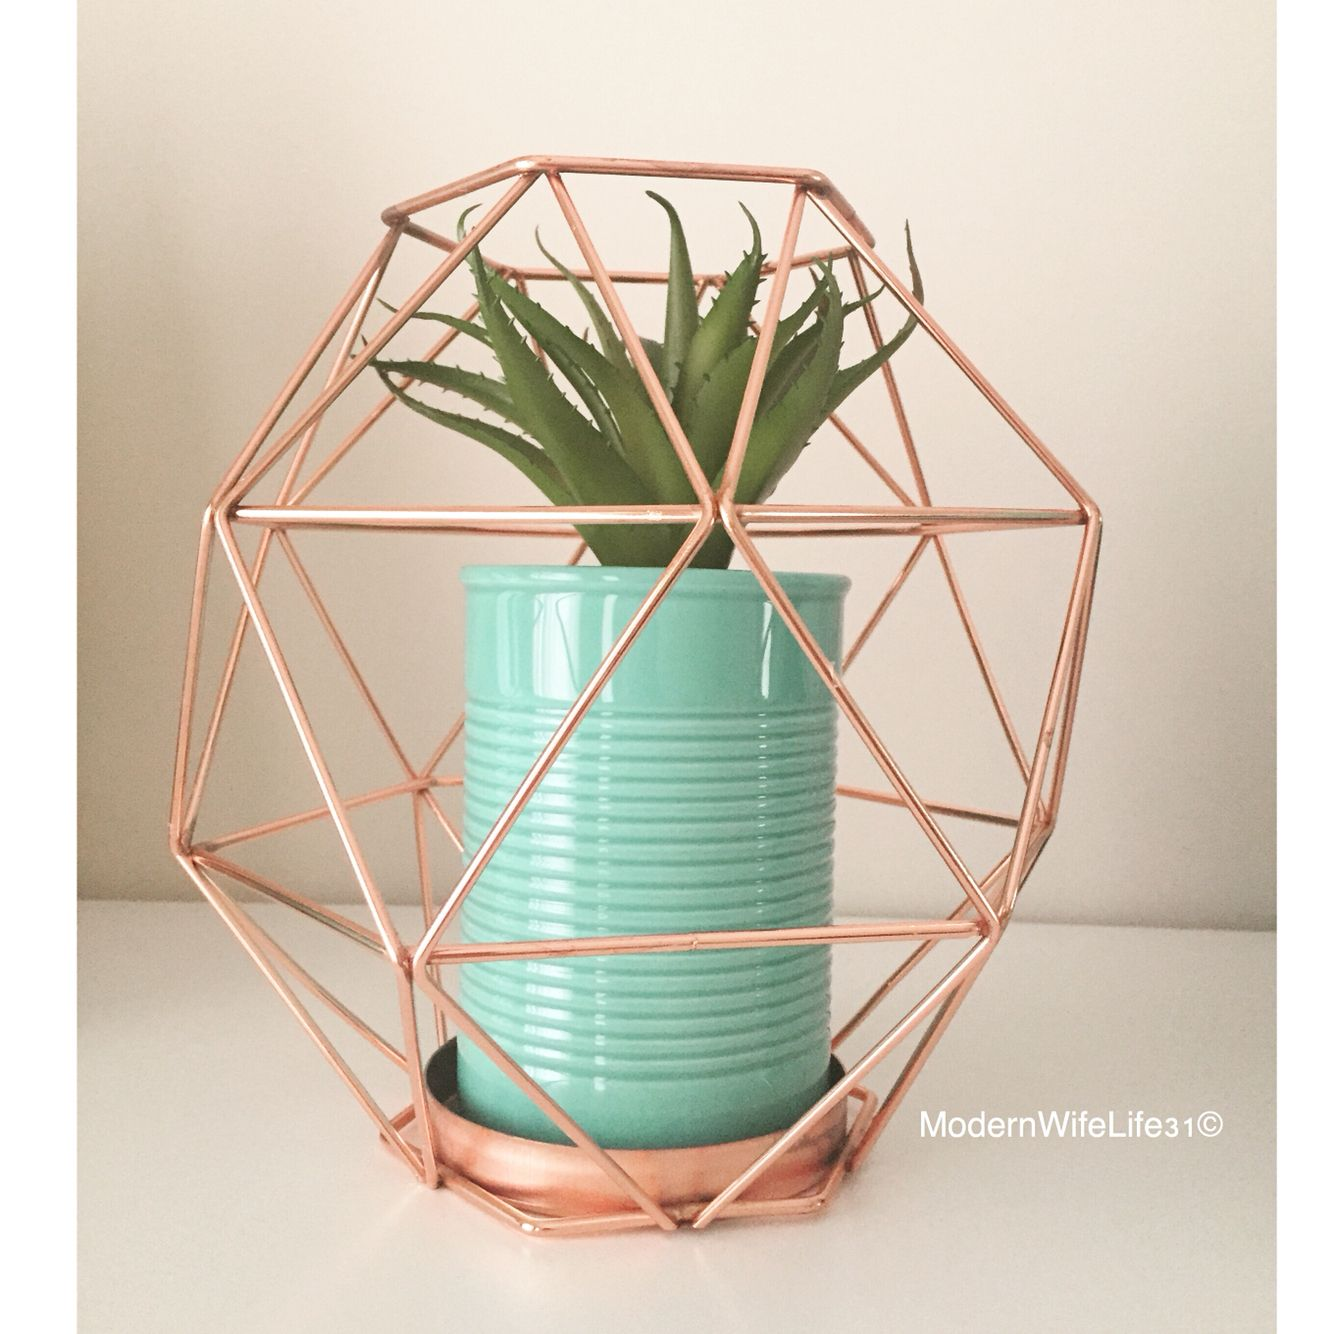 Kmart Australia copper geo candle holder with turquoise plant pot ...